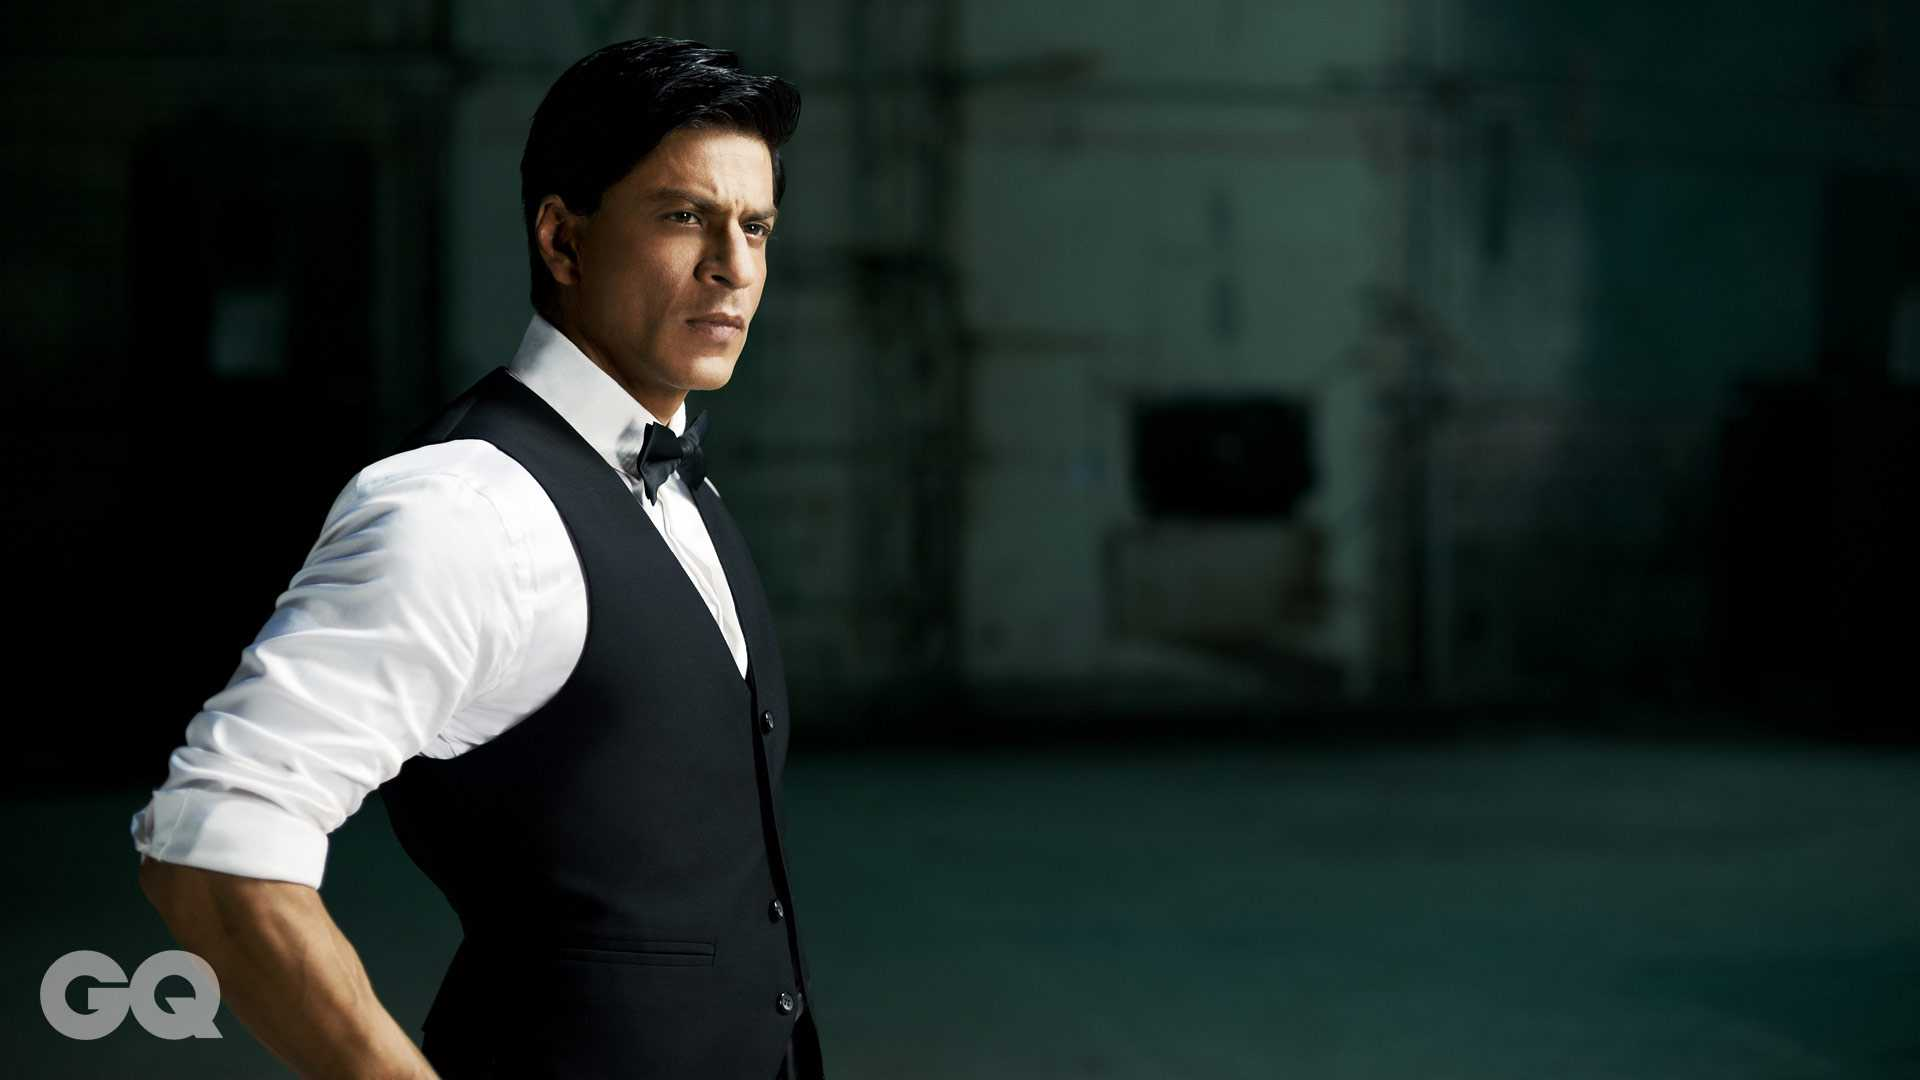 gq-shahrukh-khan-harir-tips-products